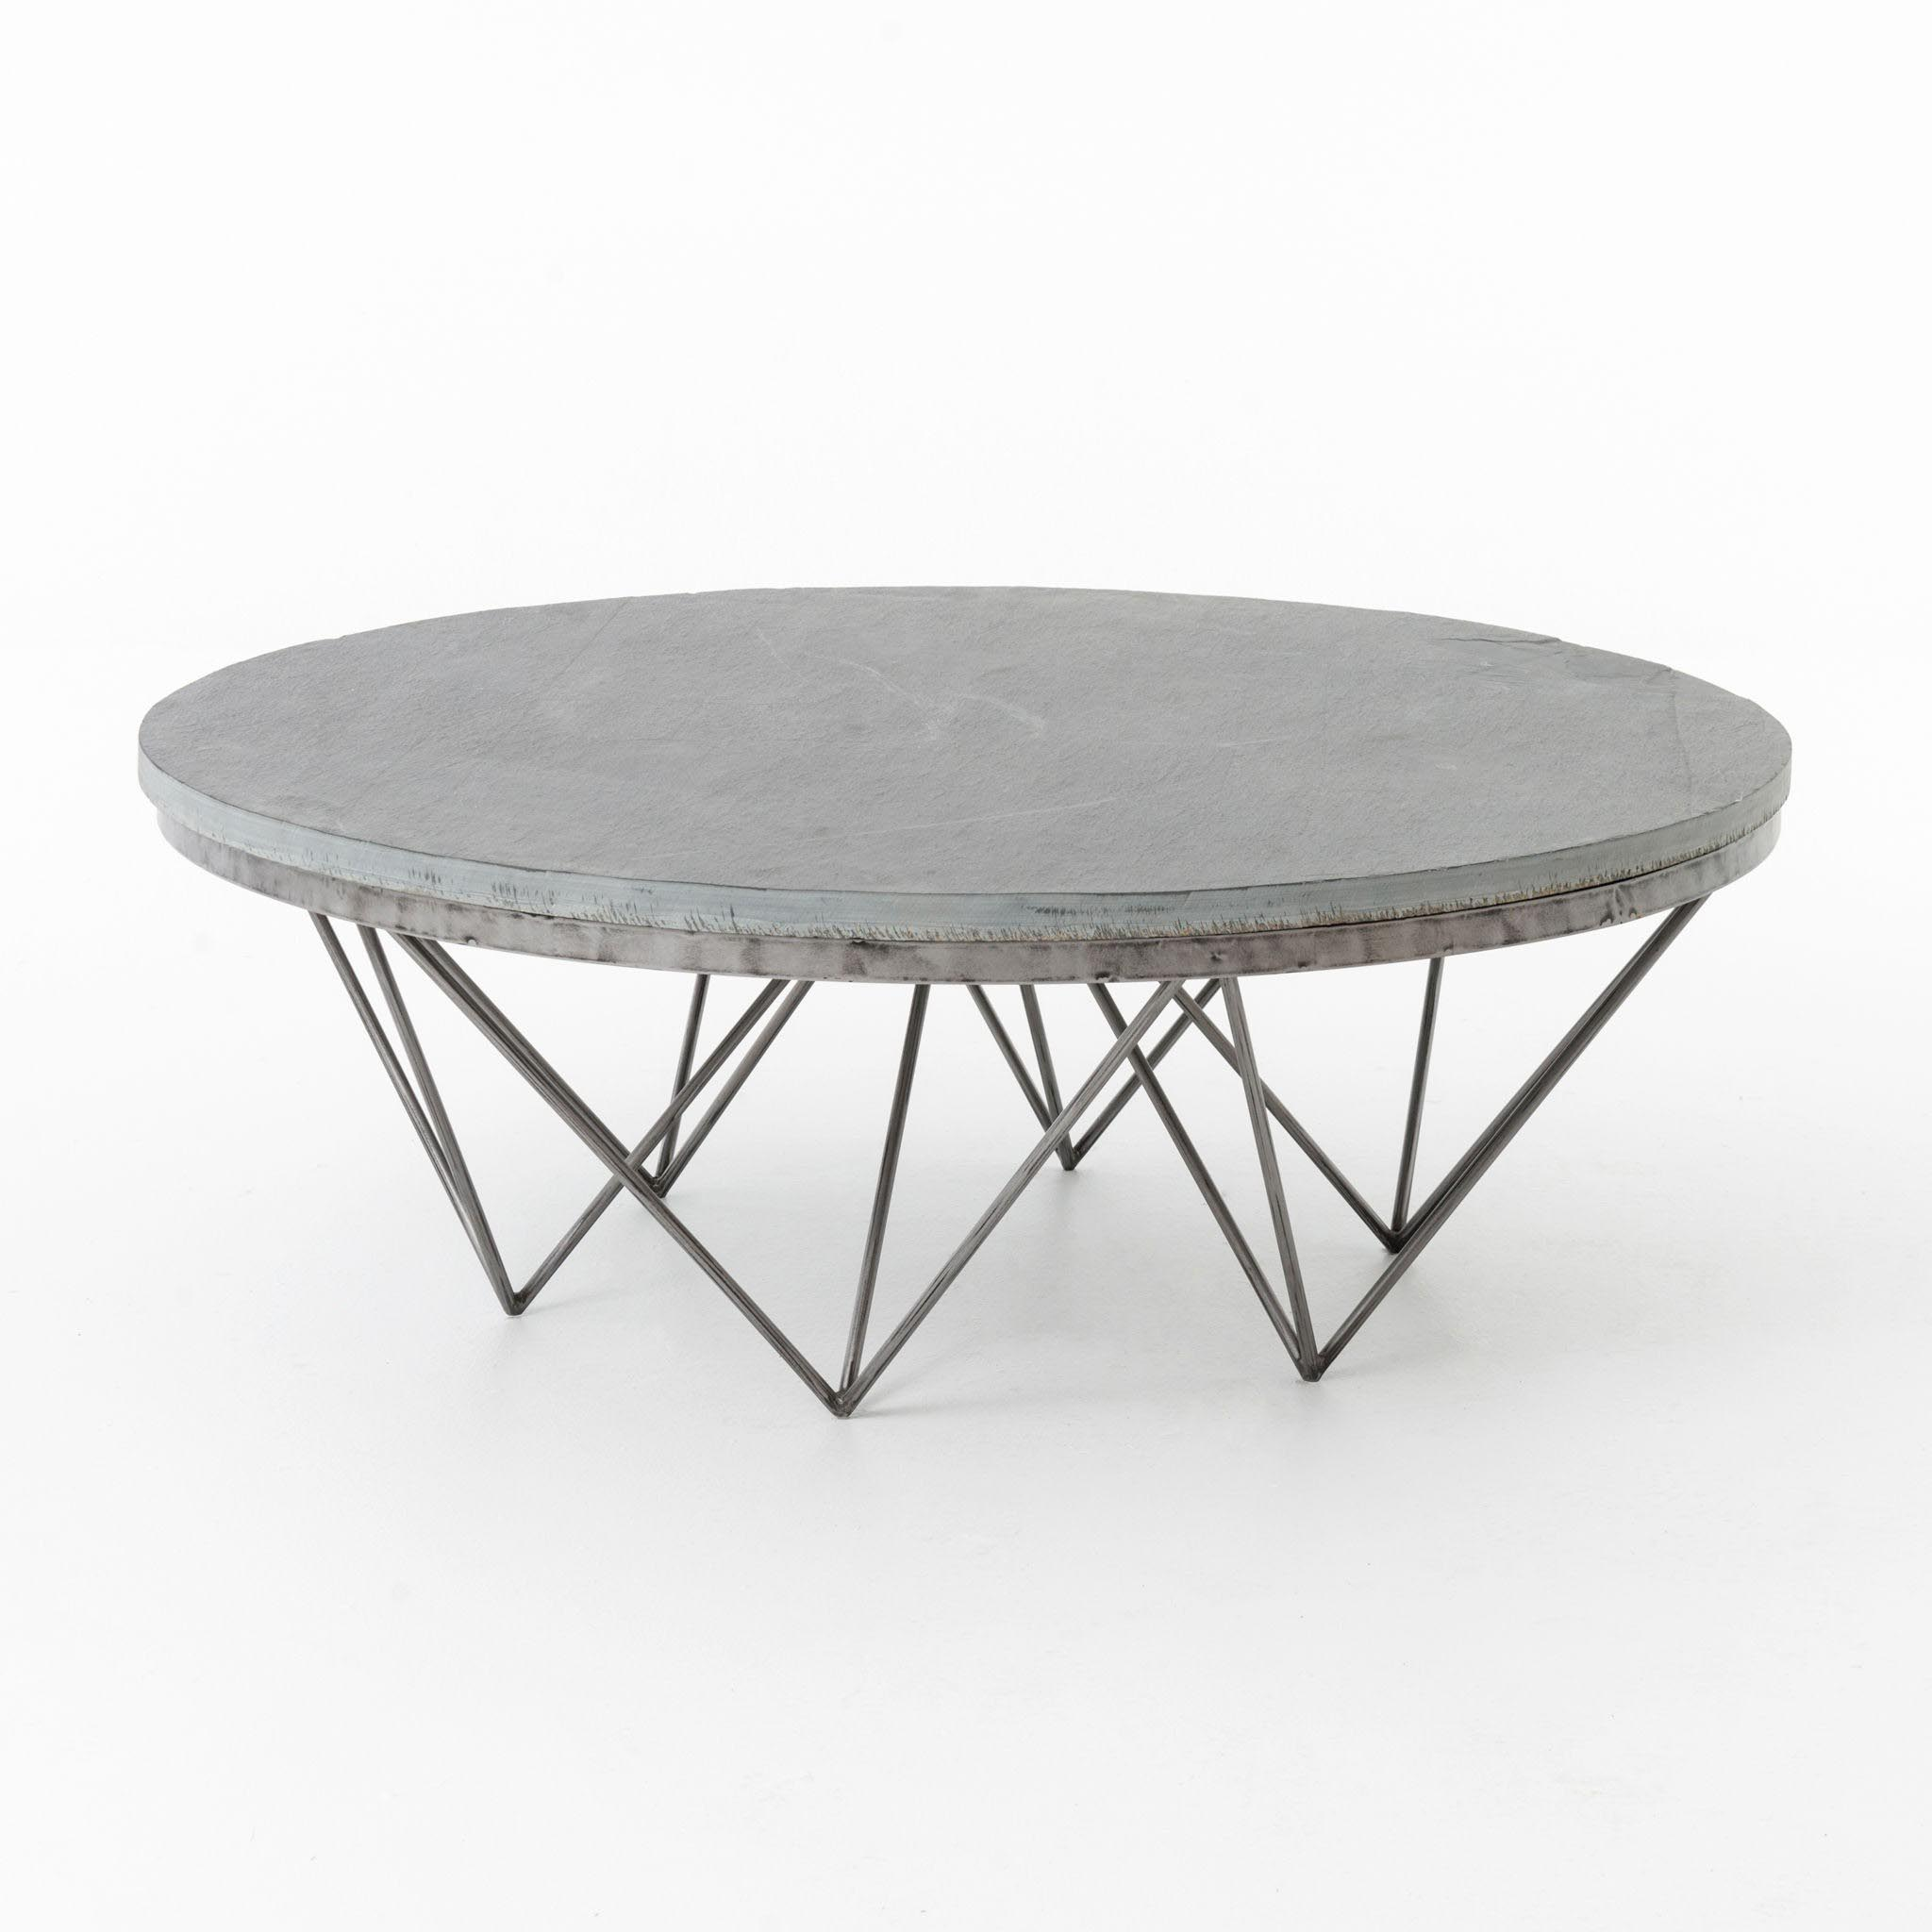 Modern circle coffee table coffee table design ideas for Modern style coffee tables